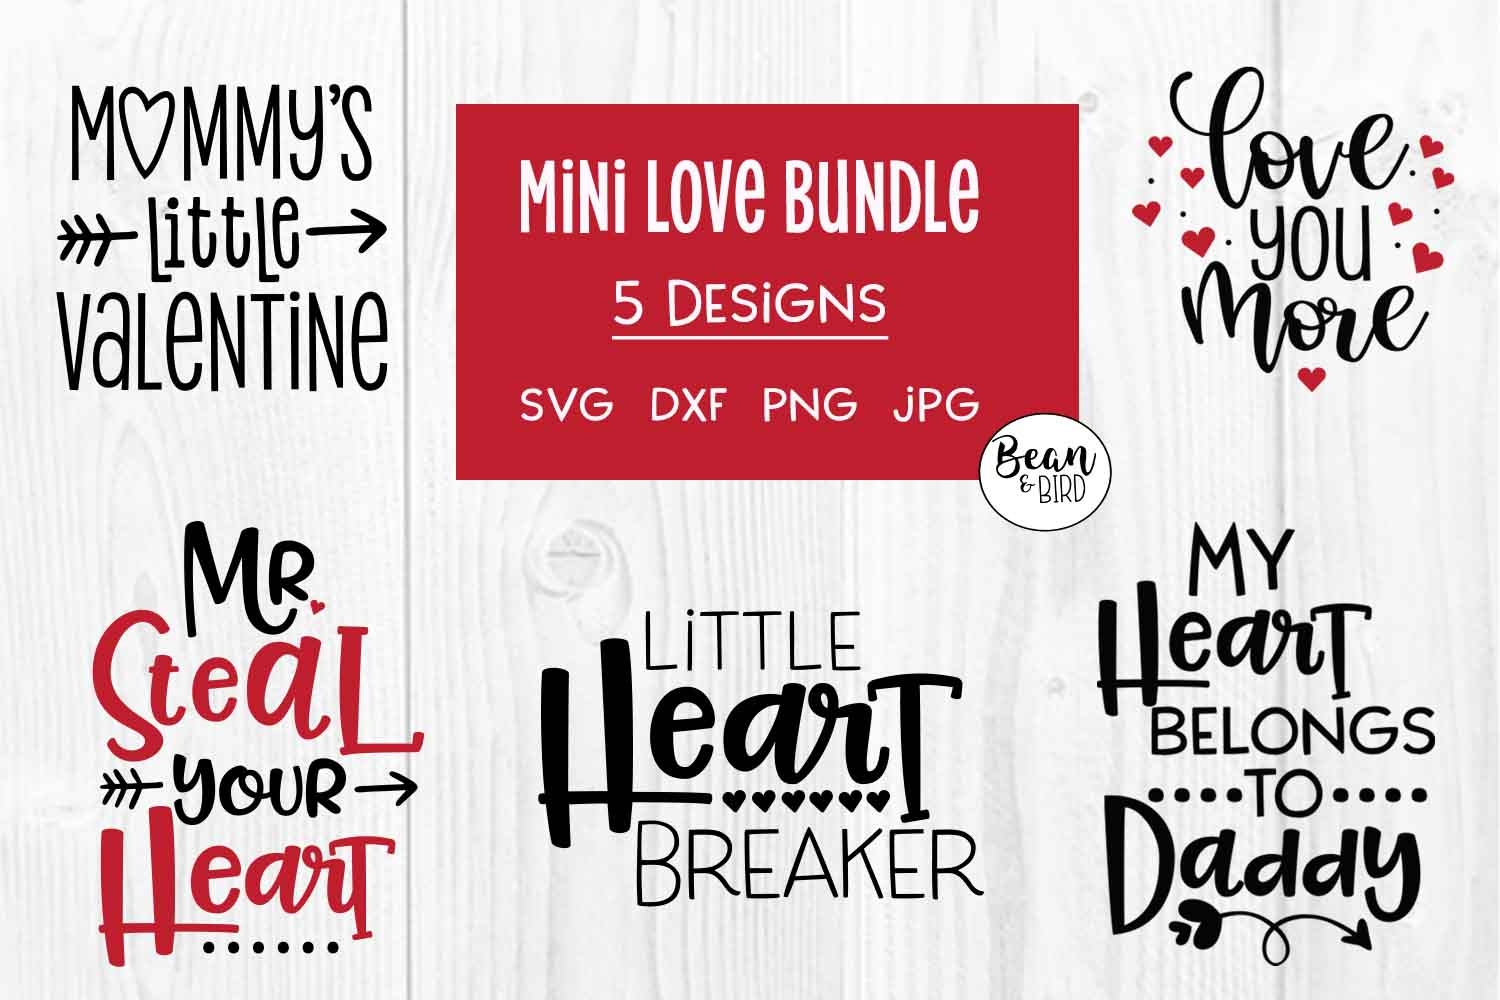 Mini Love Bundle Valentines SVG example image 2